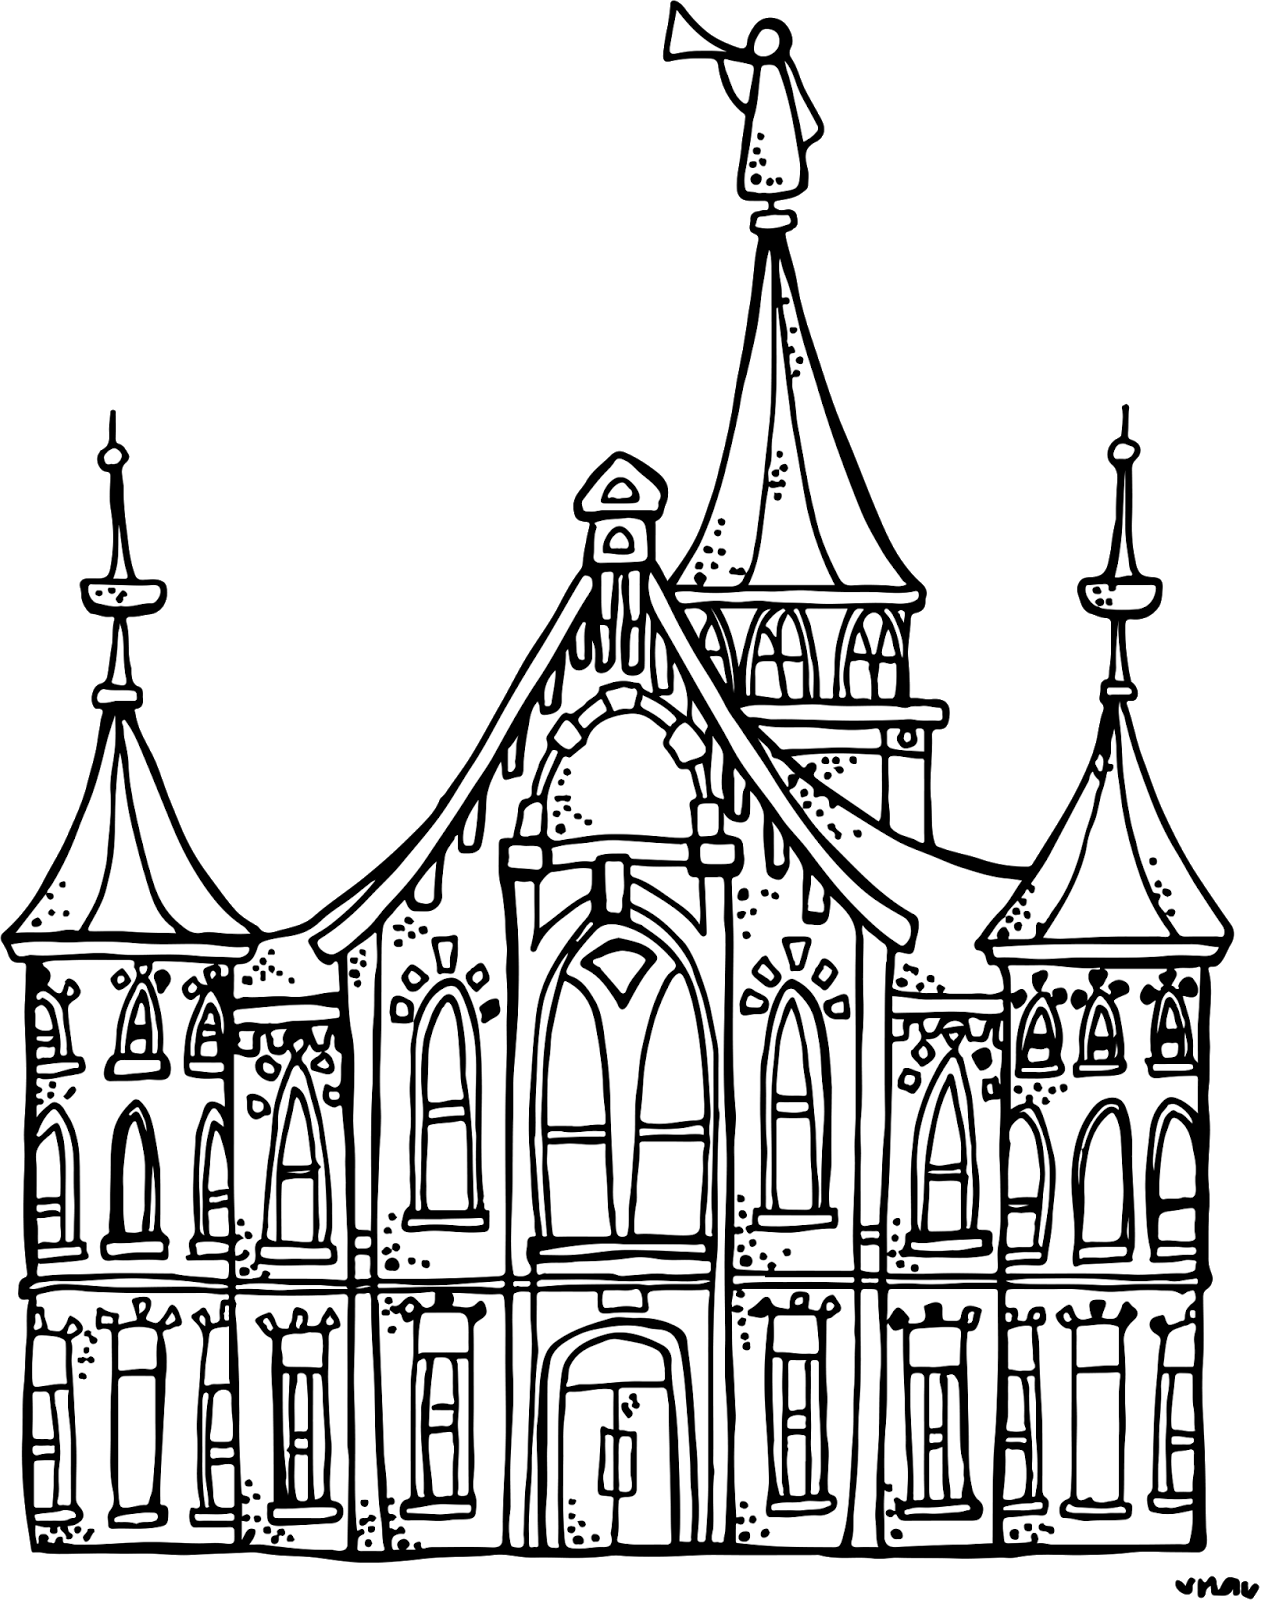 clip art black and white stock Lds clipart building. Melonheadz illustrating provo city.